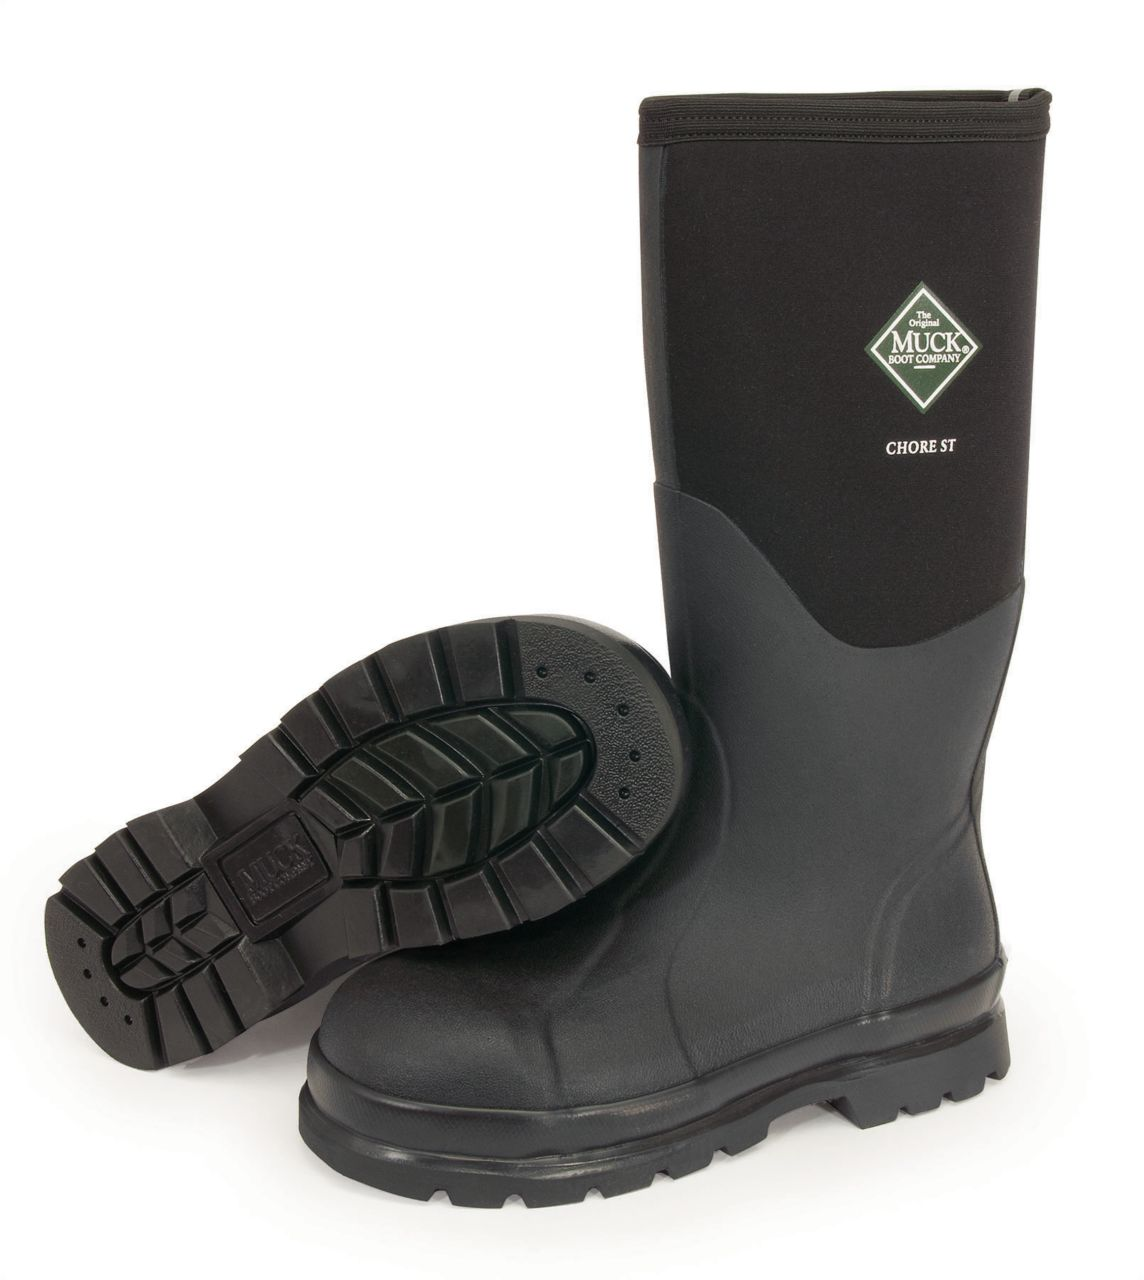 Muck Chore Hi-Safety Toe